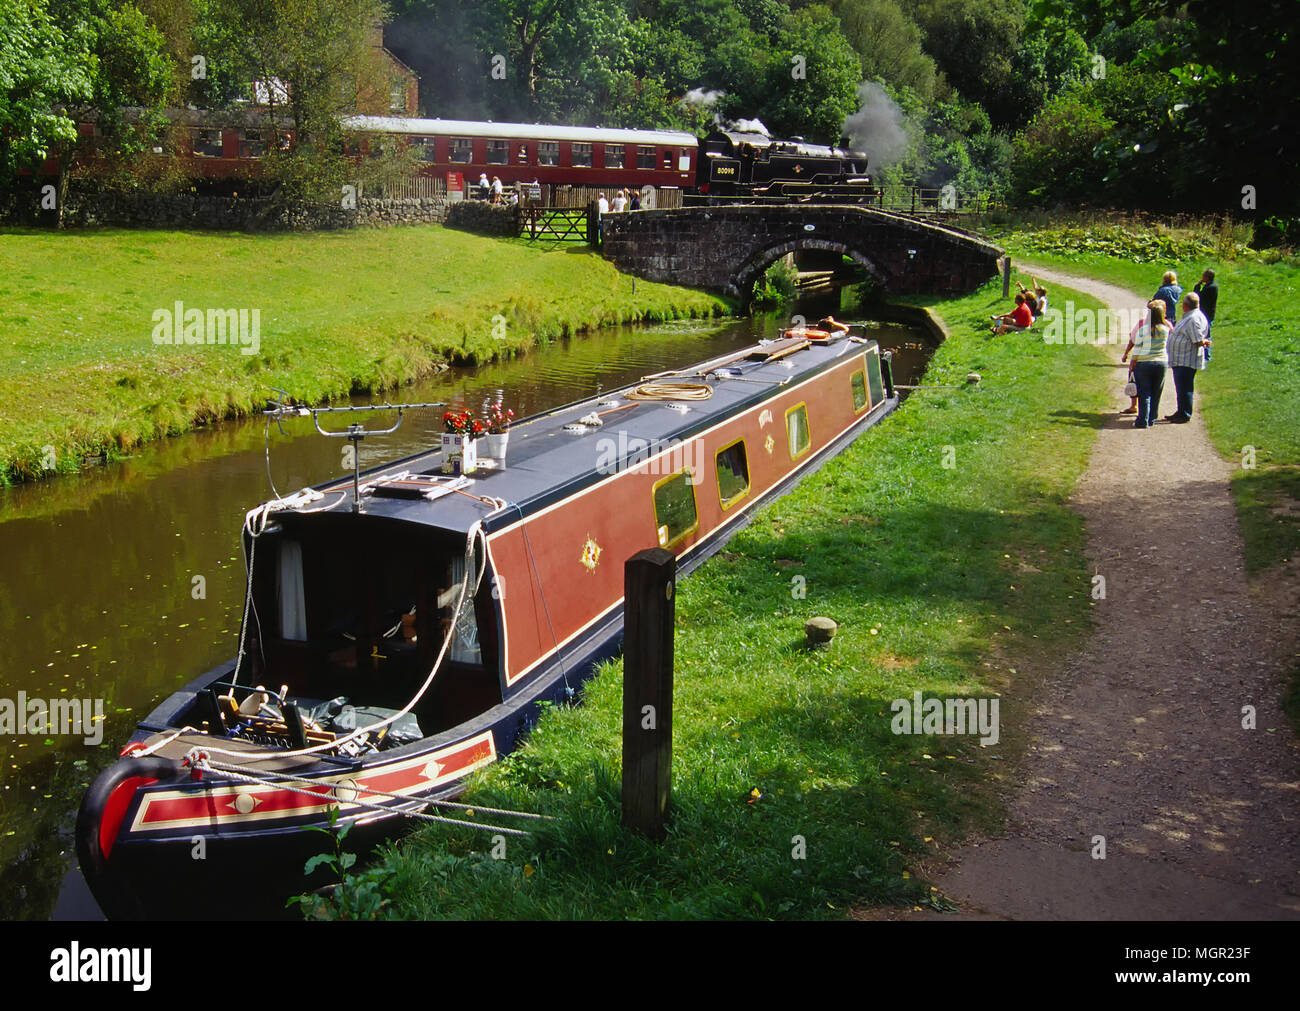 The Black Lion pub and Narrow Boat at Consall - Stock Image